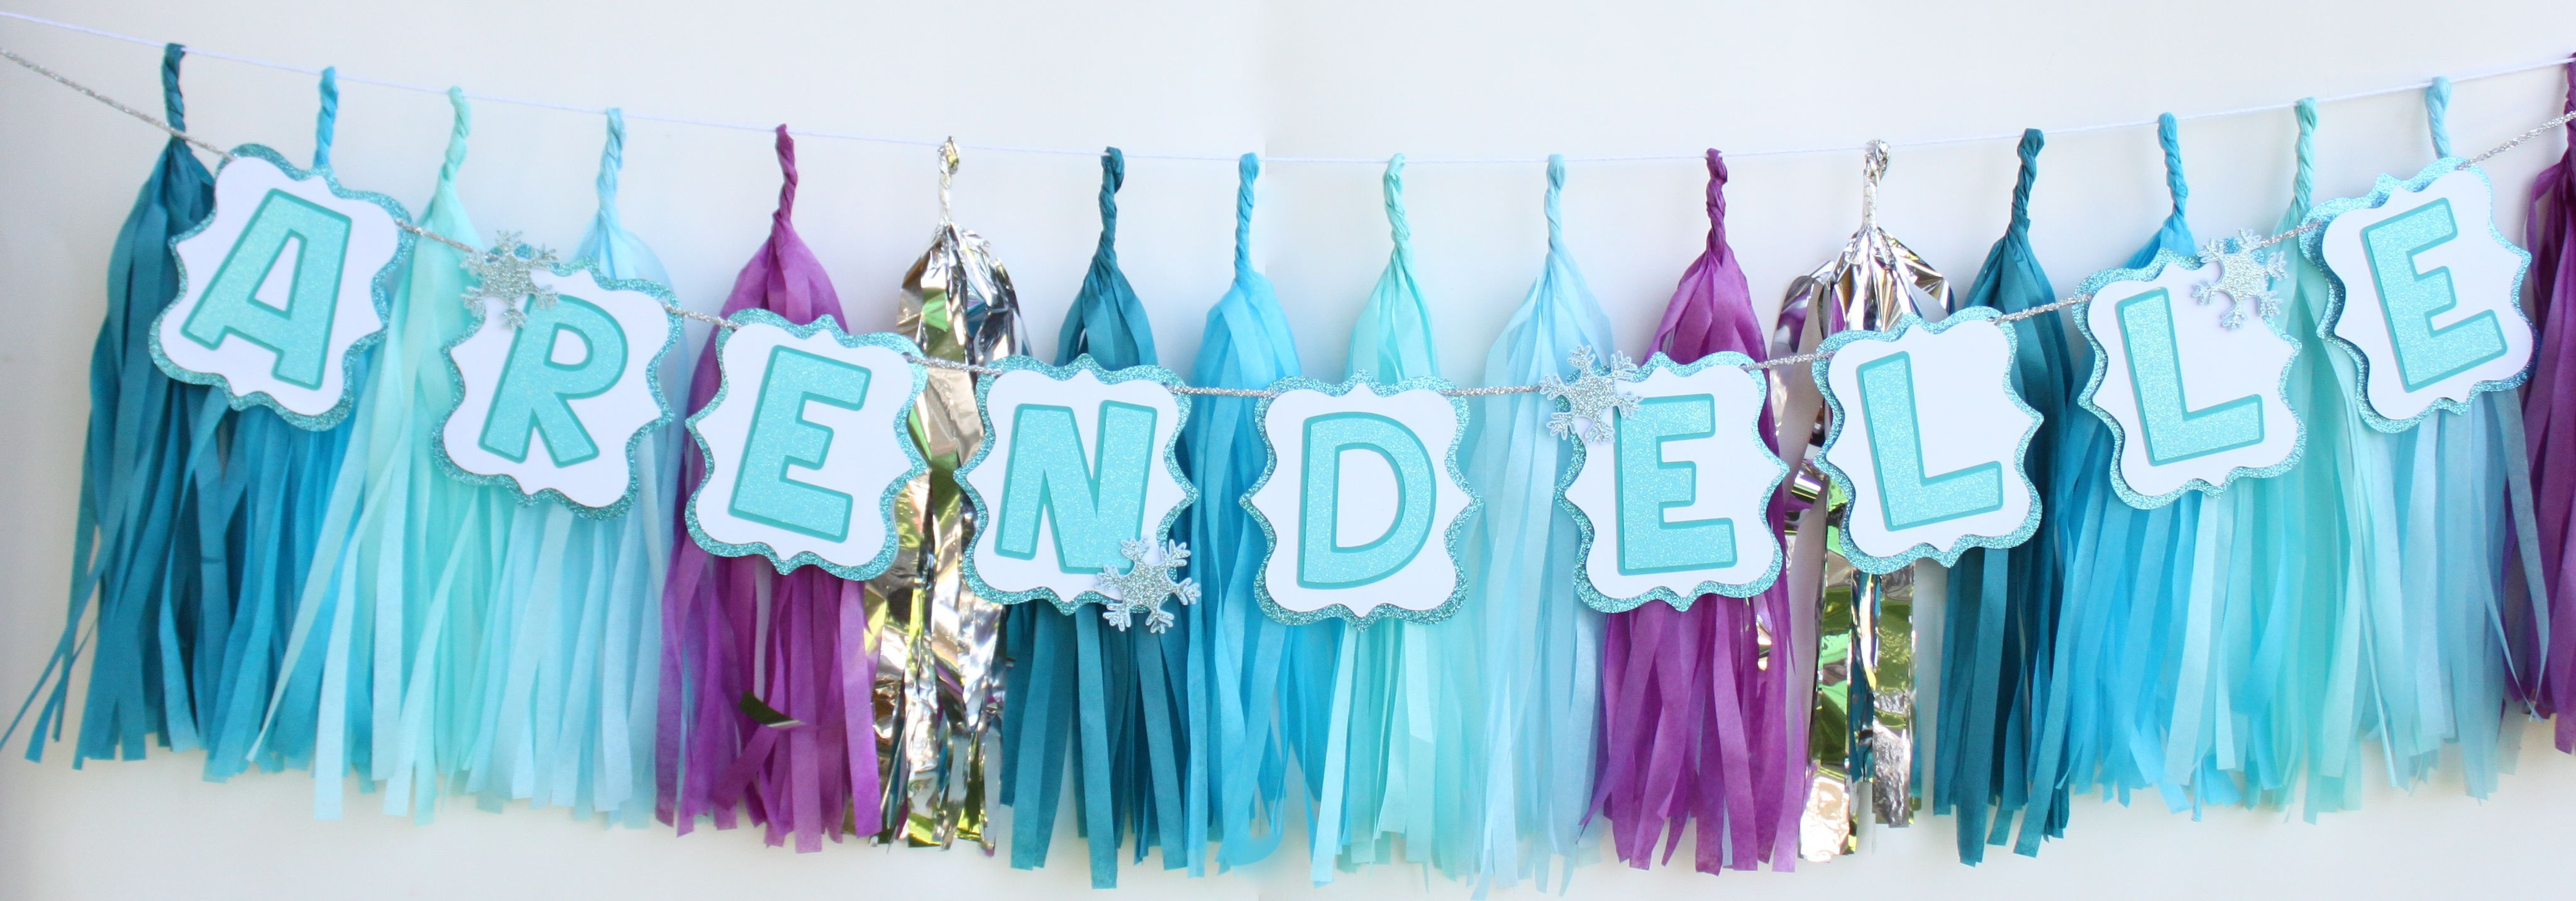 Frozen Theme Banner 183 The Banner Shoppe 183 Online Store Powered by